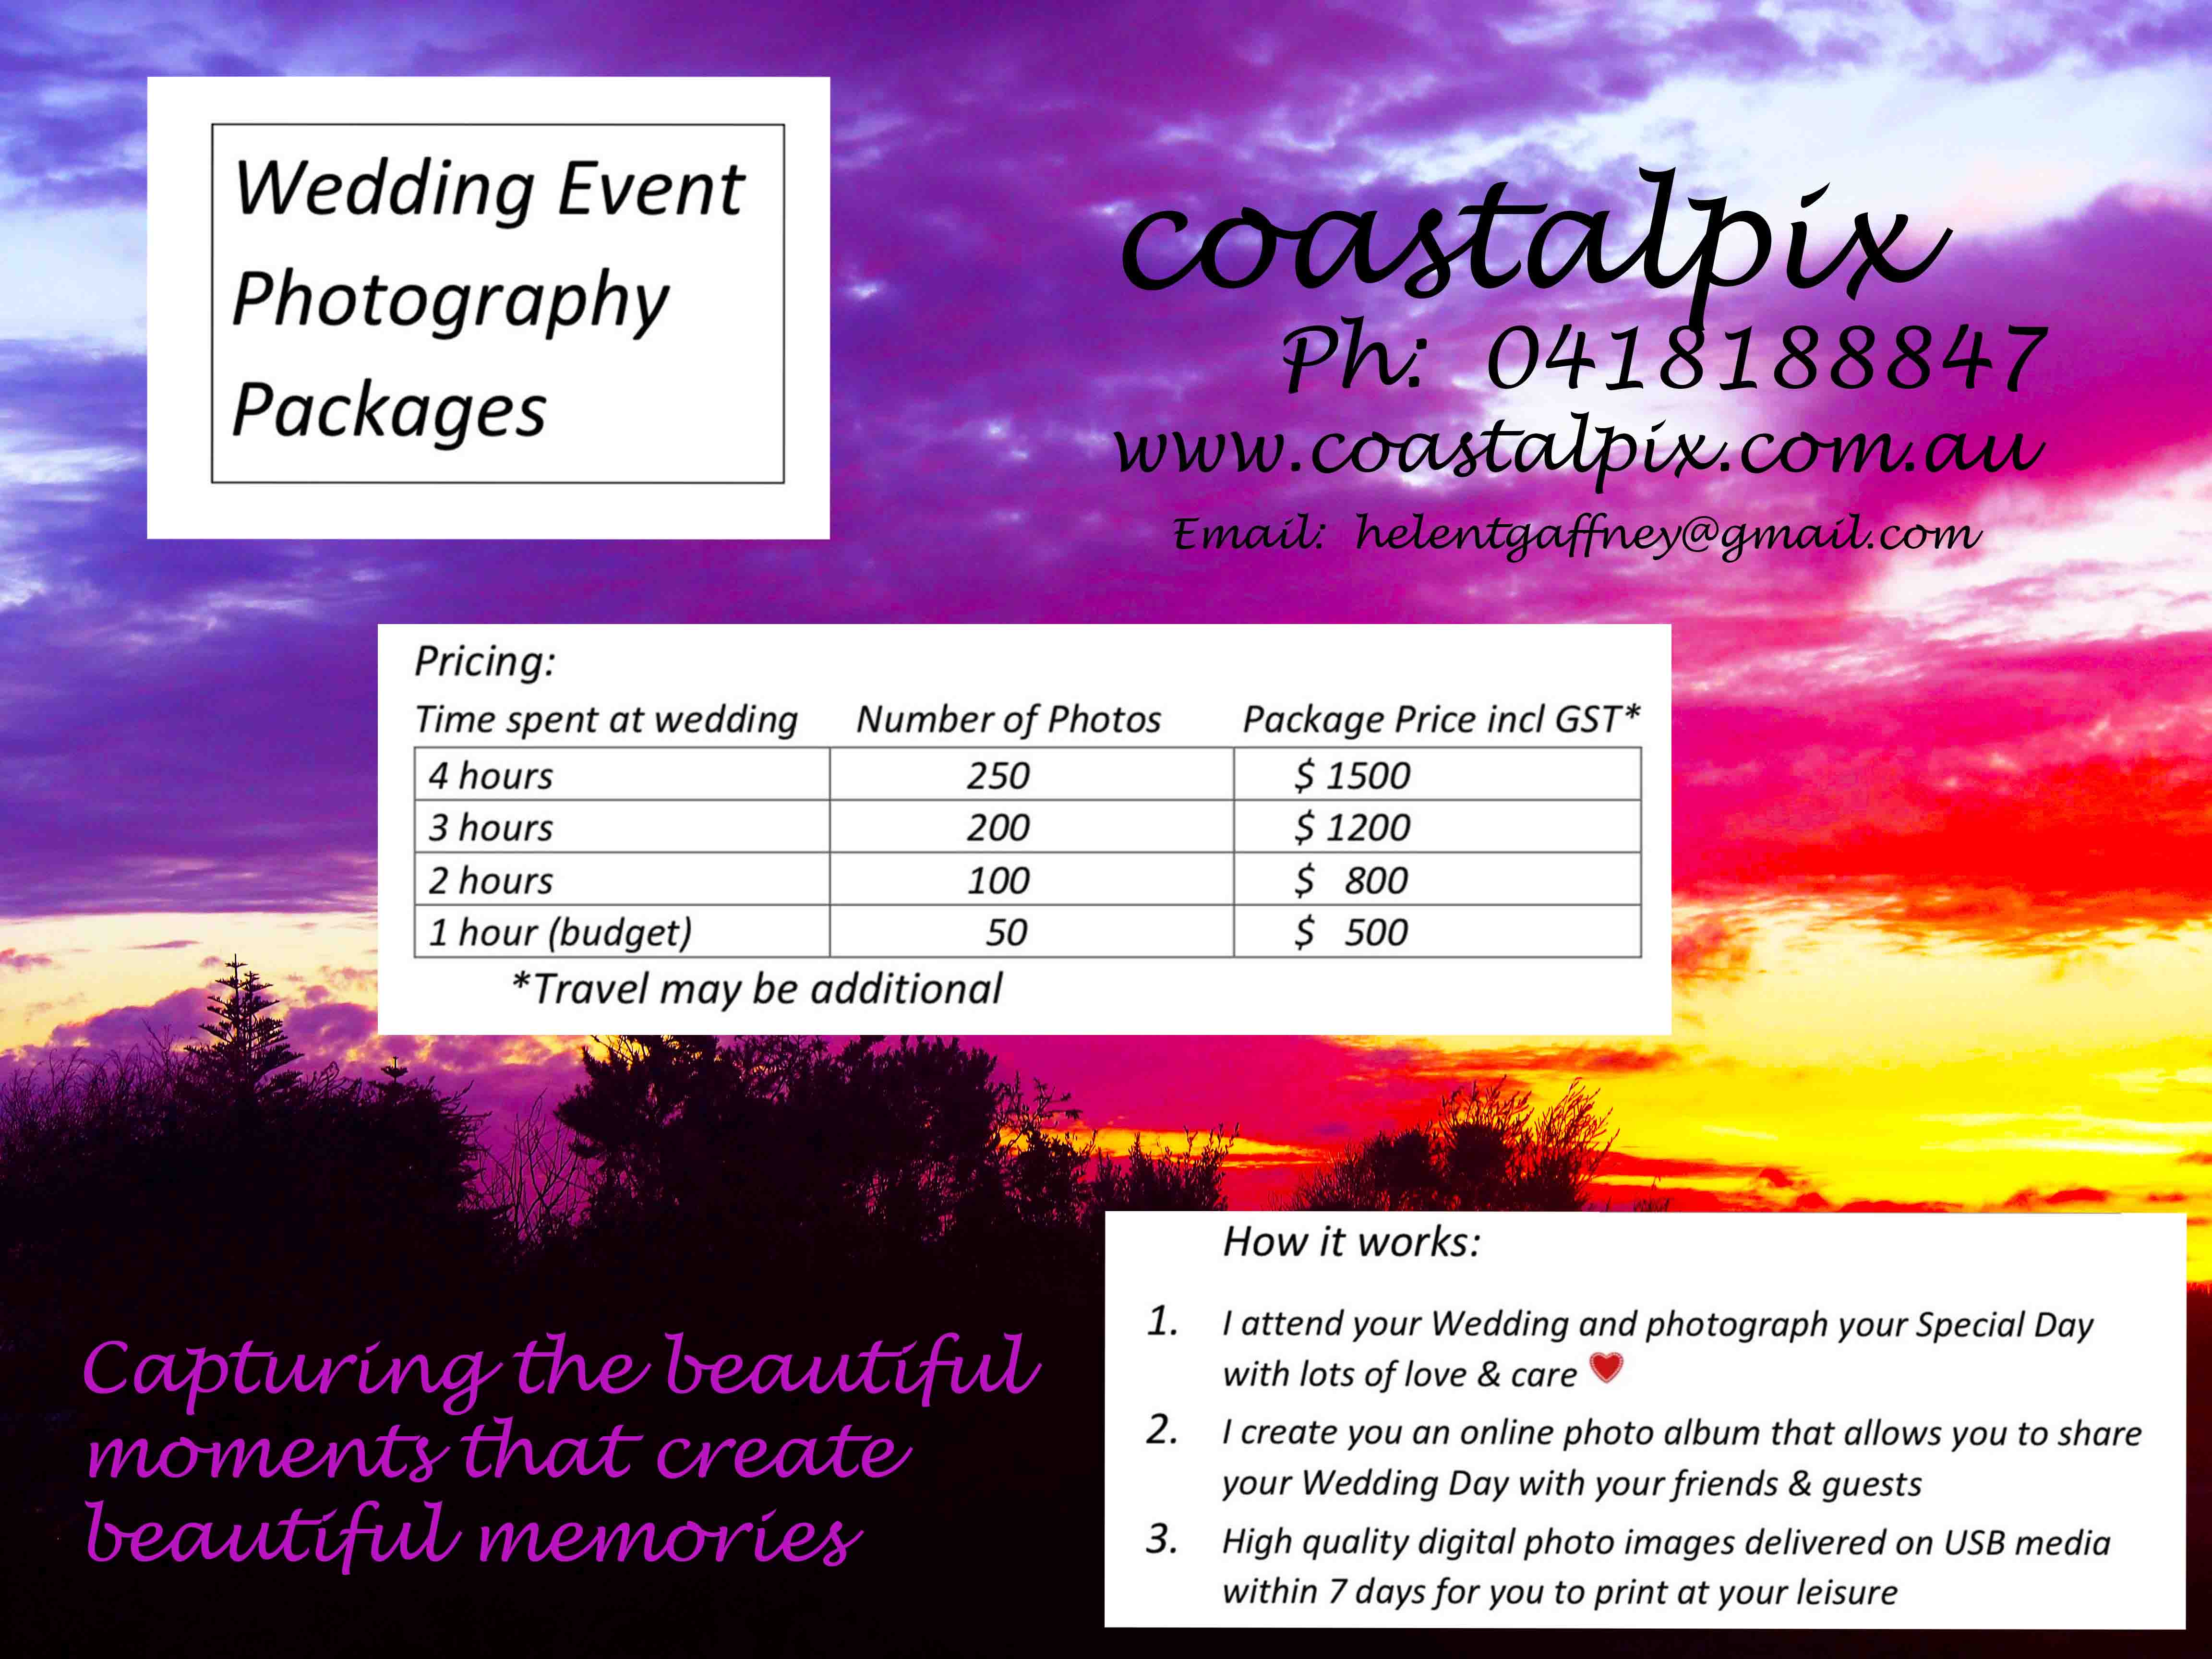 wedding-package-details.jpg